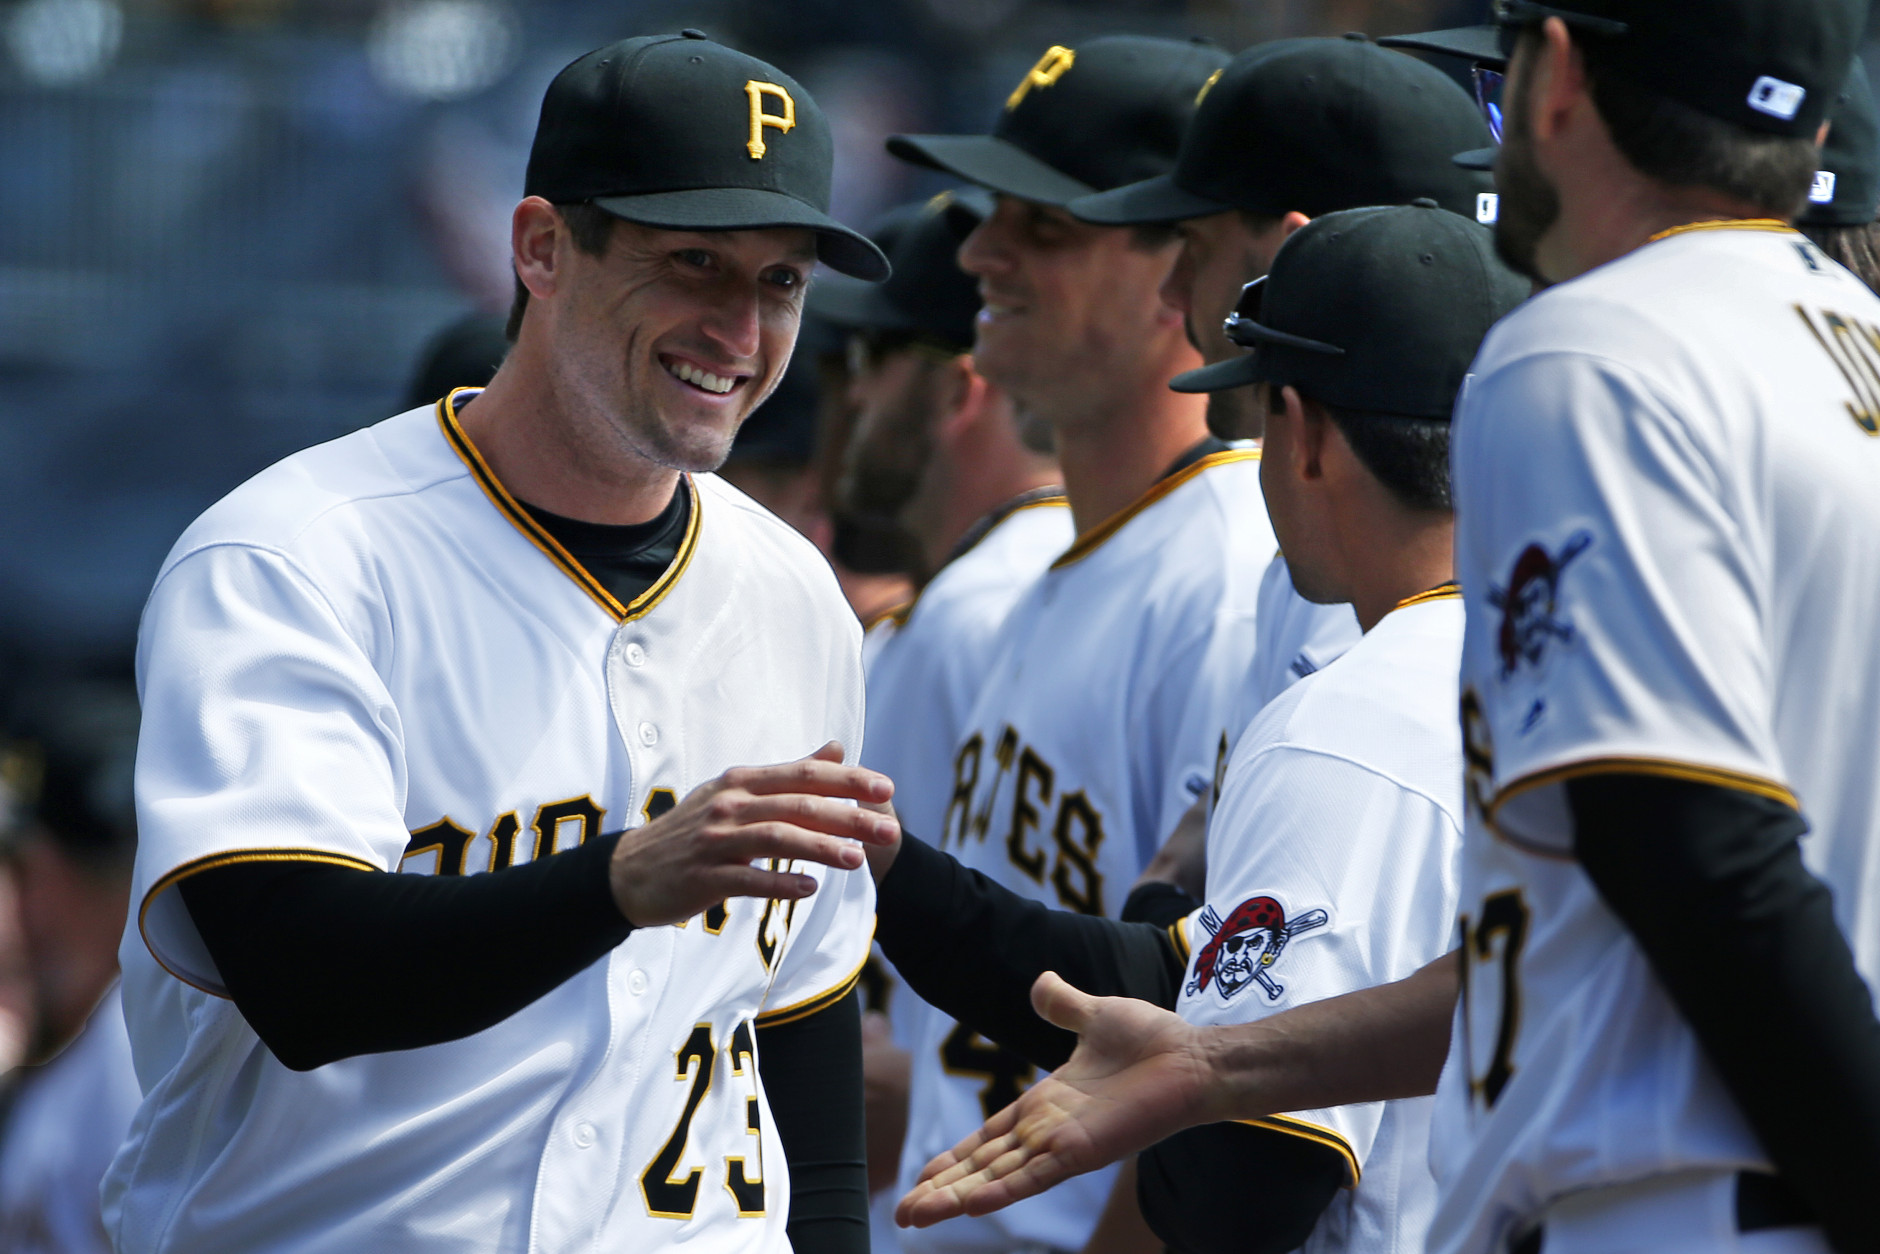 Pirates ink Freese to two-year extension